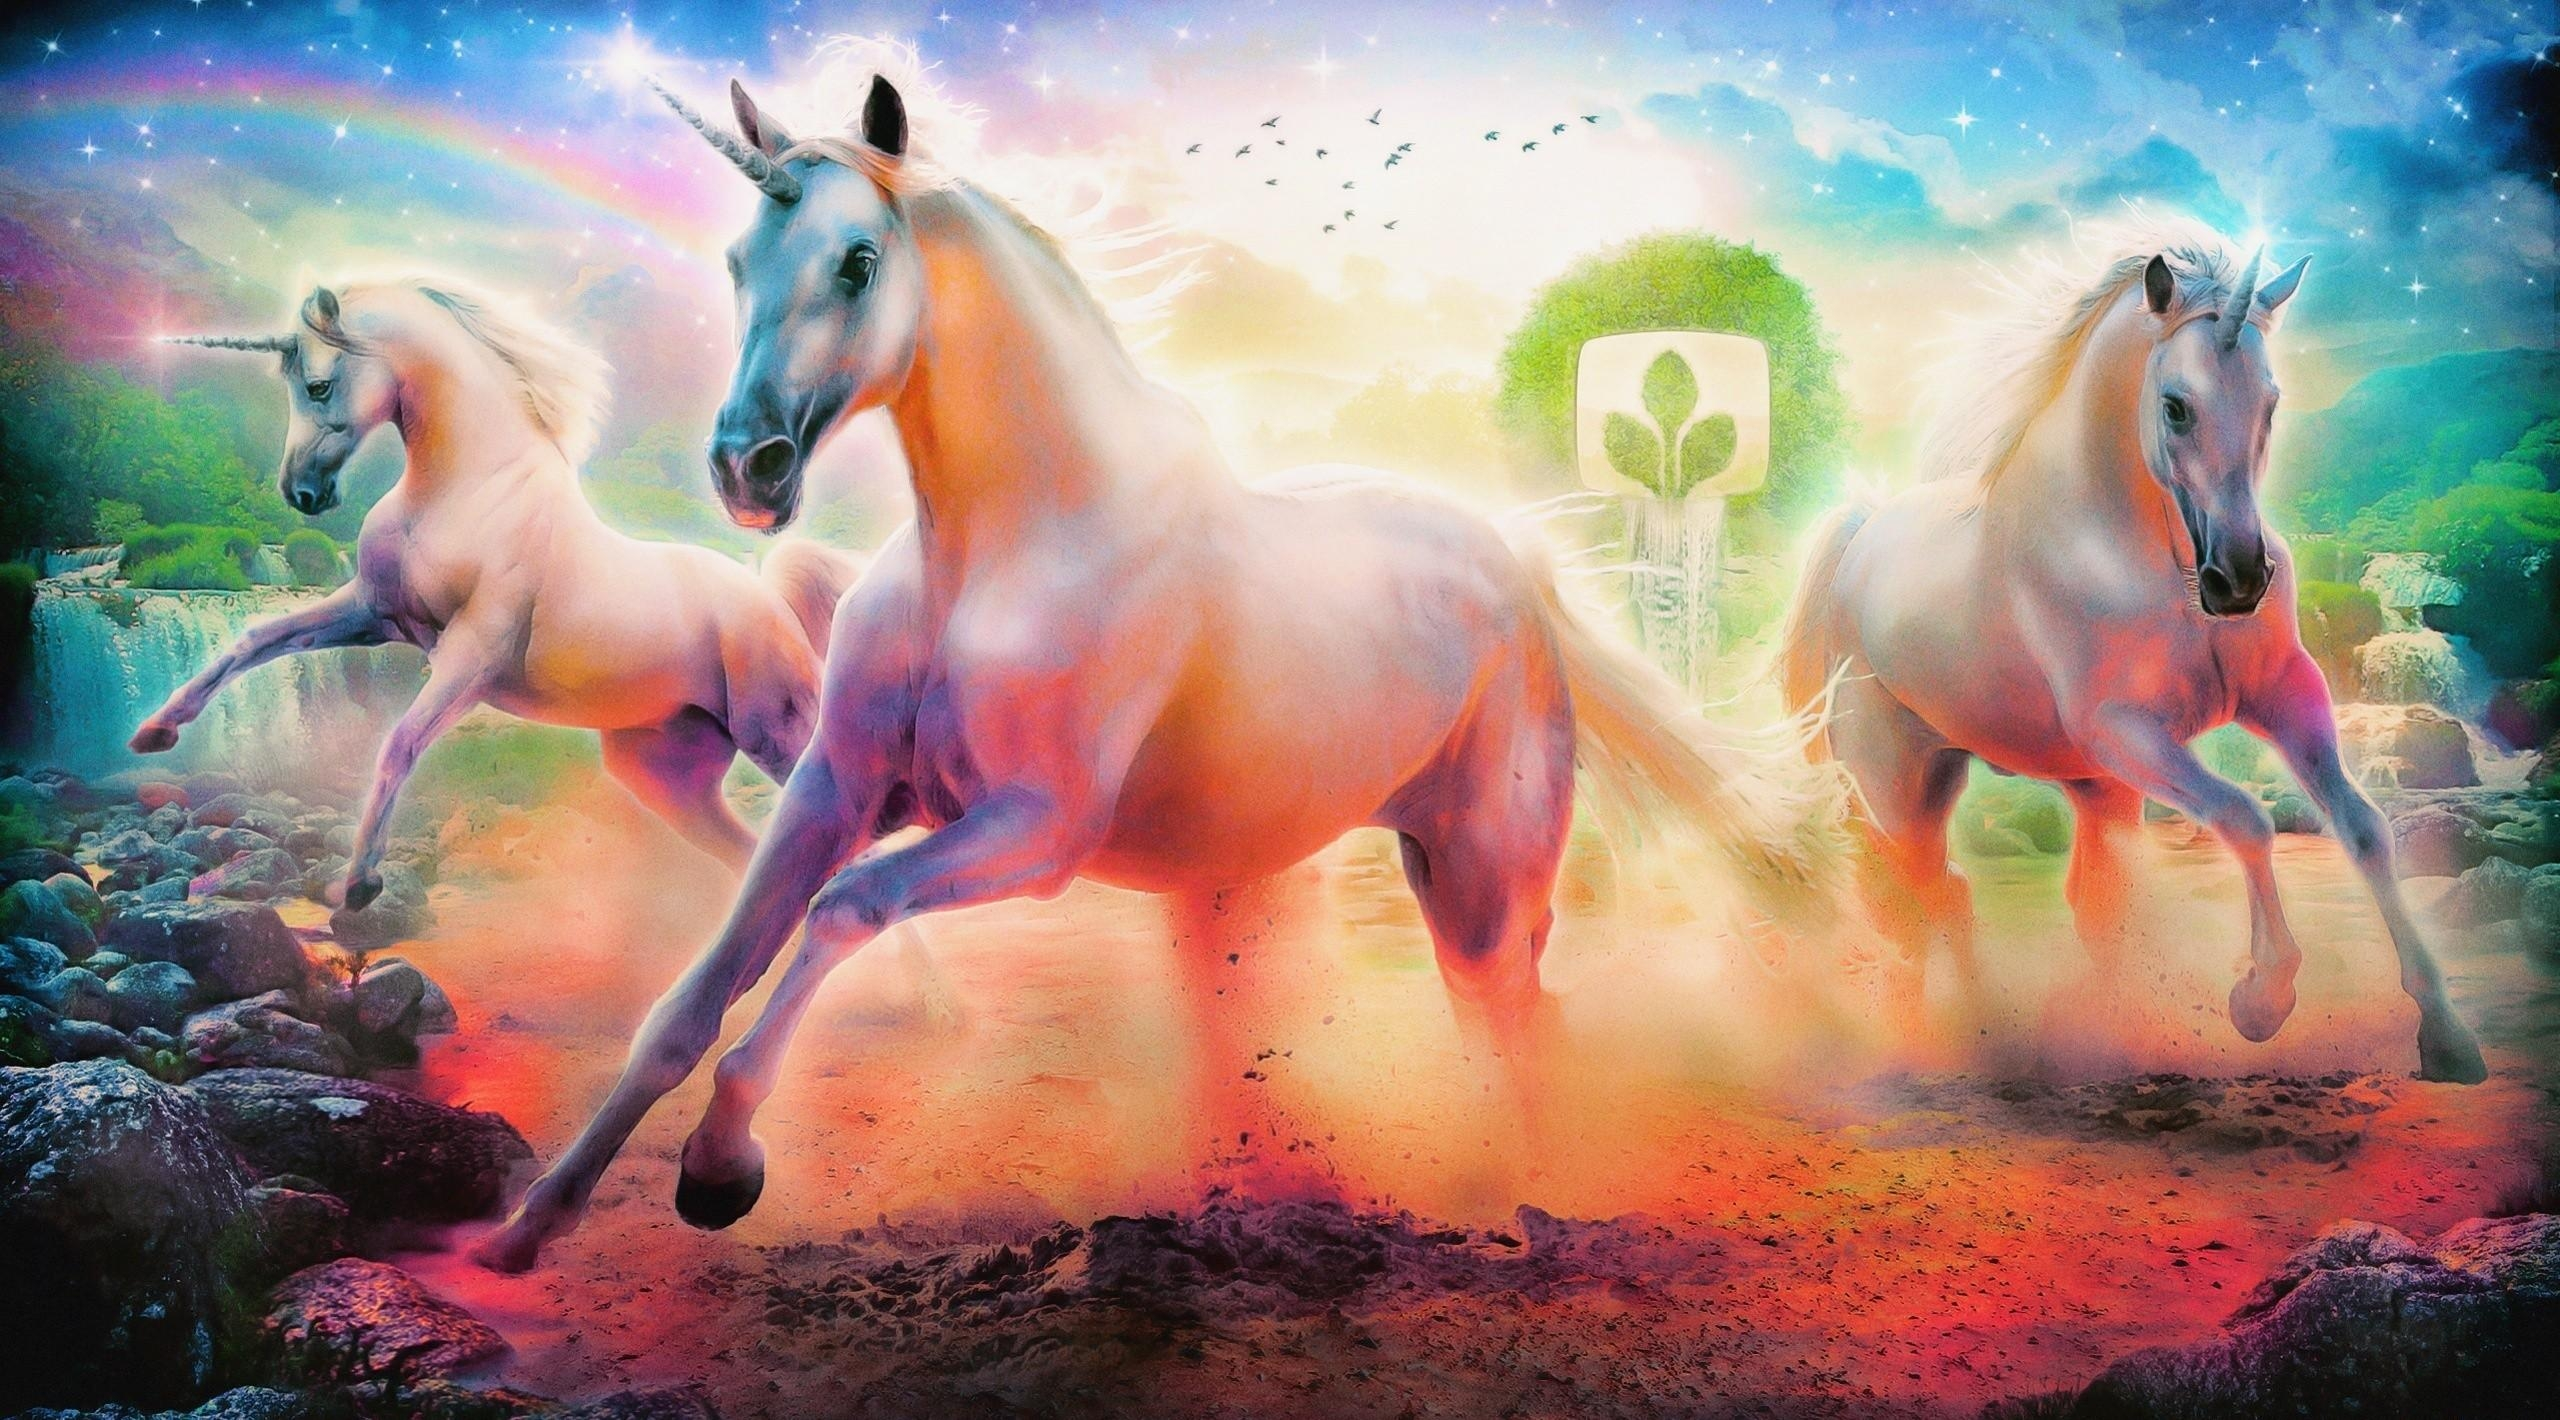 144534 download wallpaper Horses, Rainbow, Fantasy, Stones, Unicorns, Wood, Tree, Emblem screensavers and pictures for free